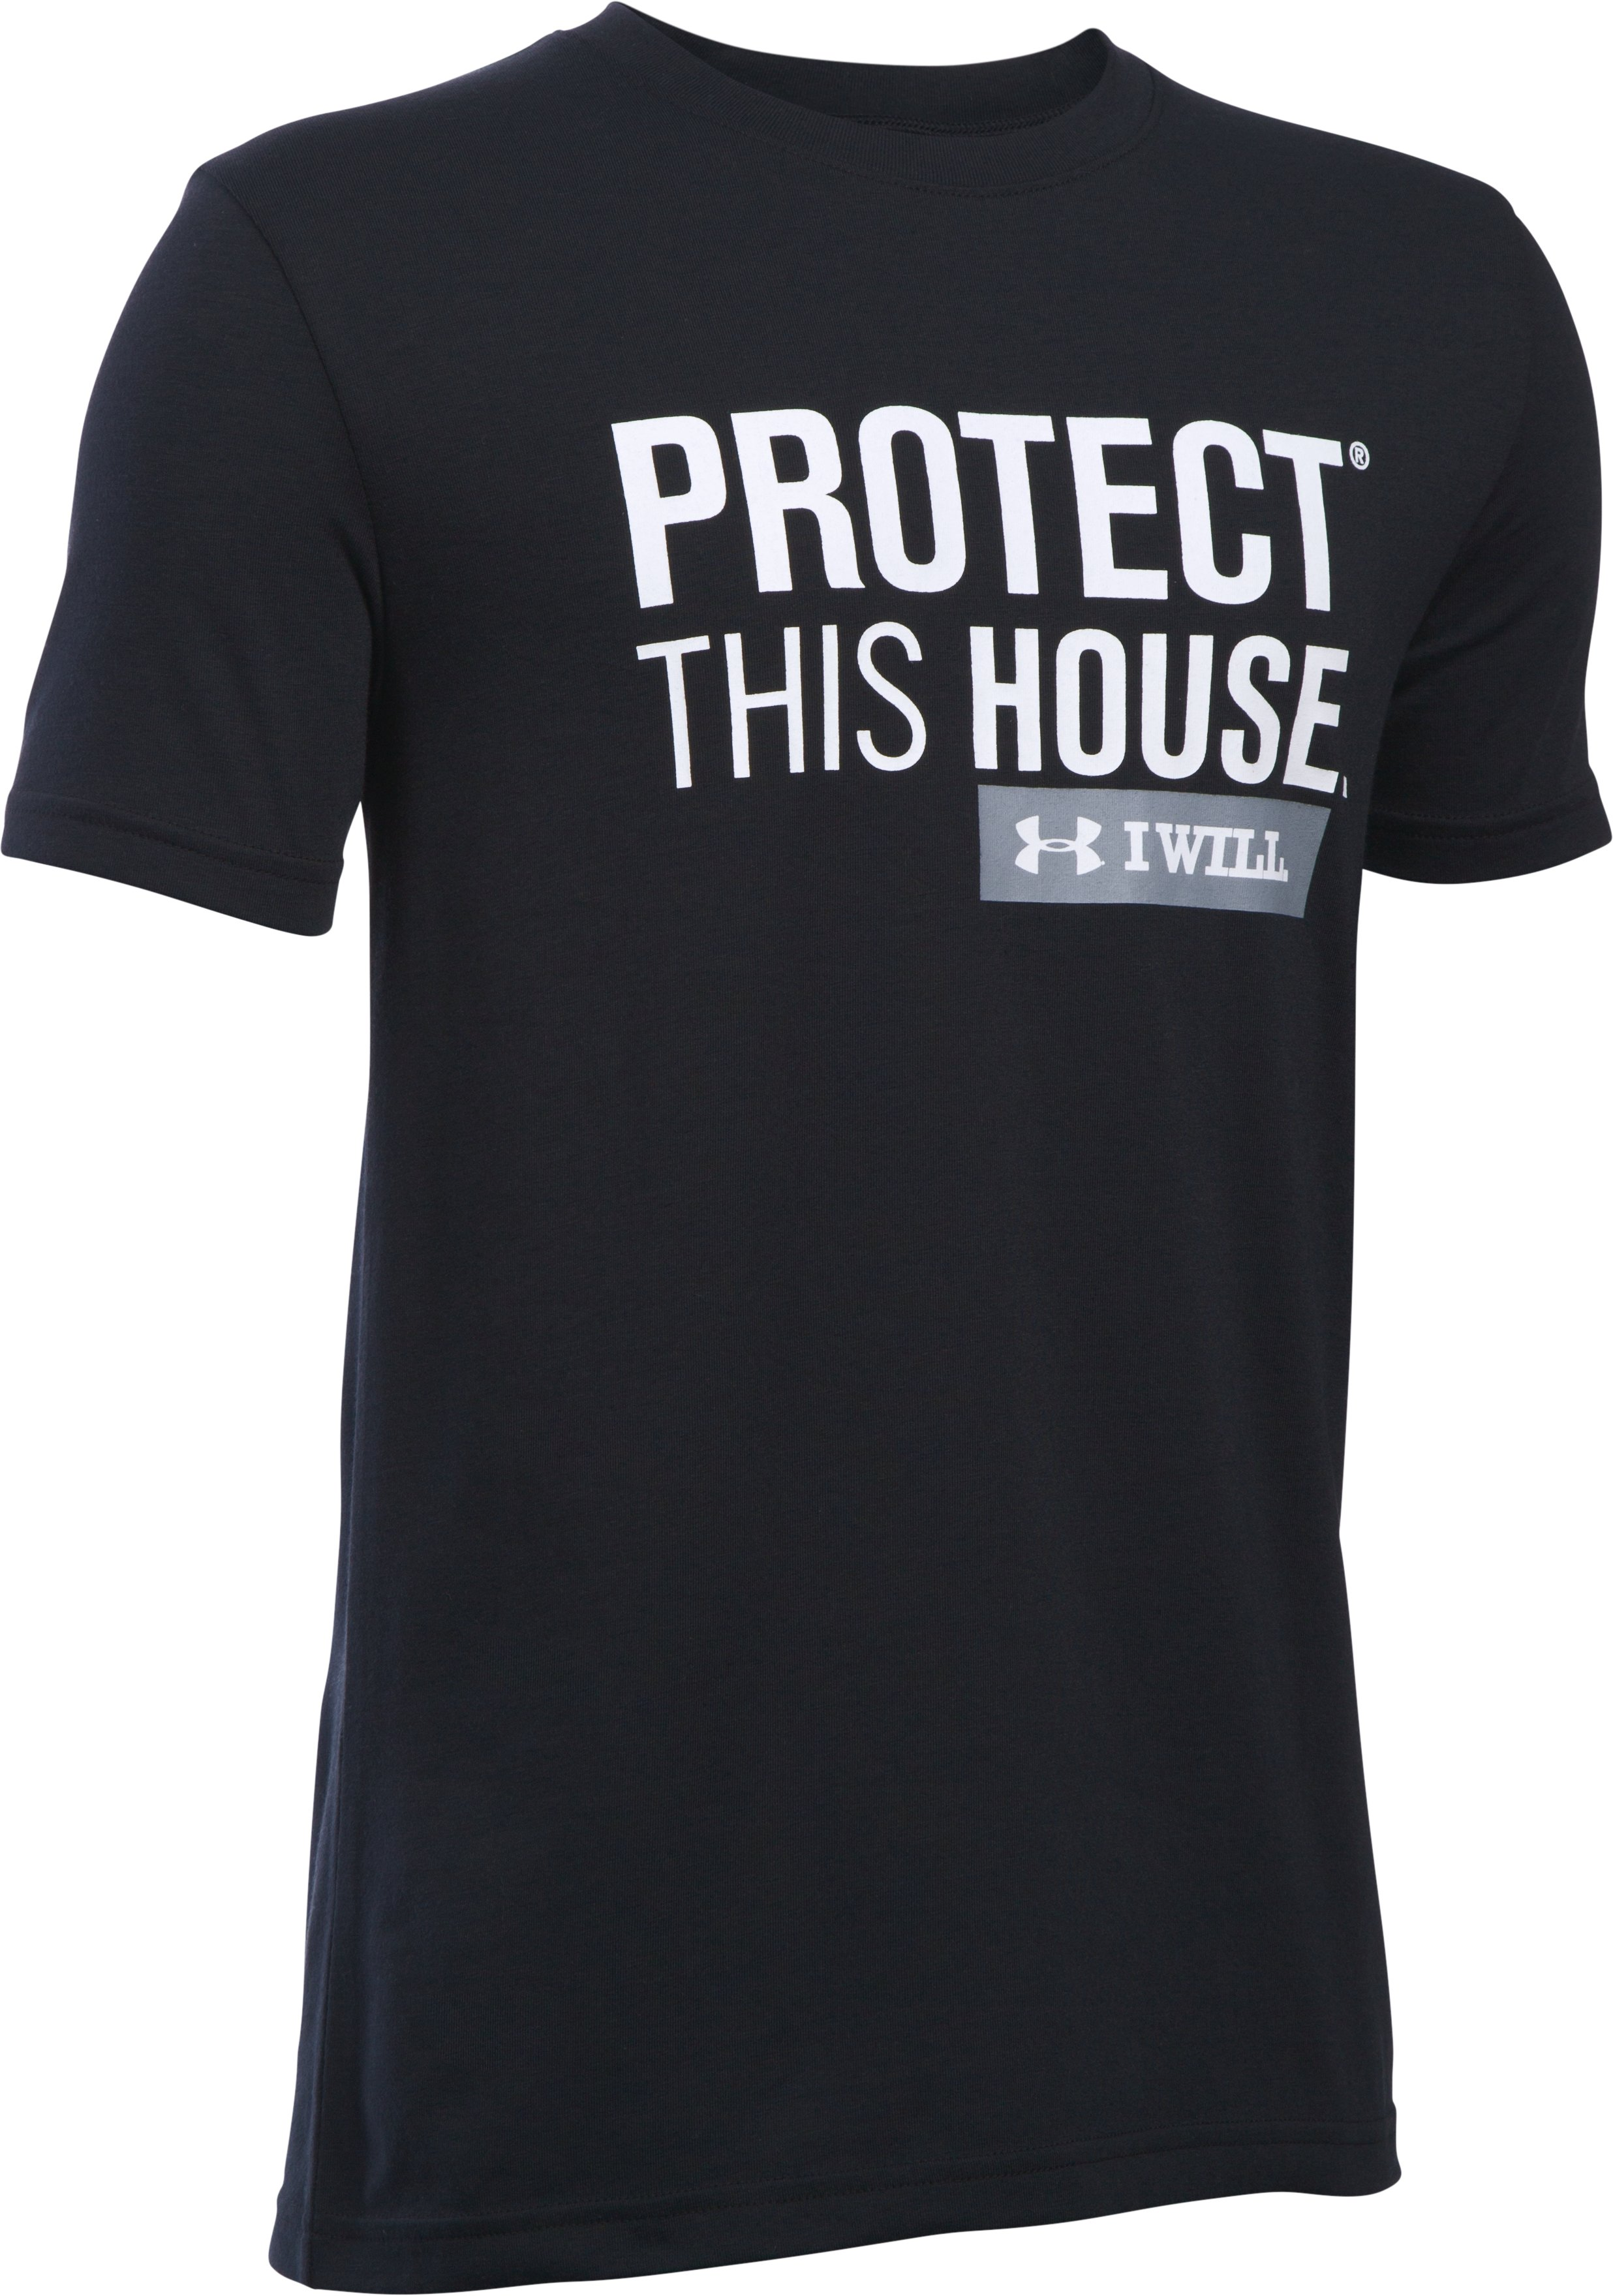 Boys' UA Protect This House Short Sleeve T-Shirt, Black , undefined